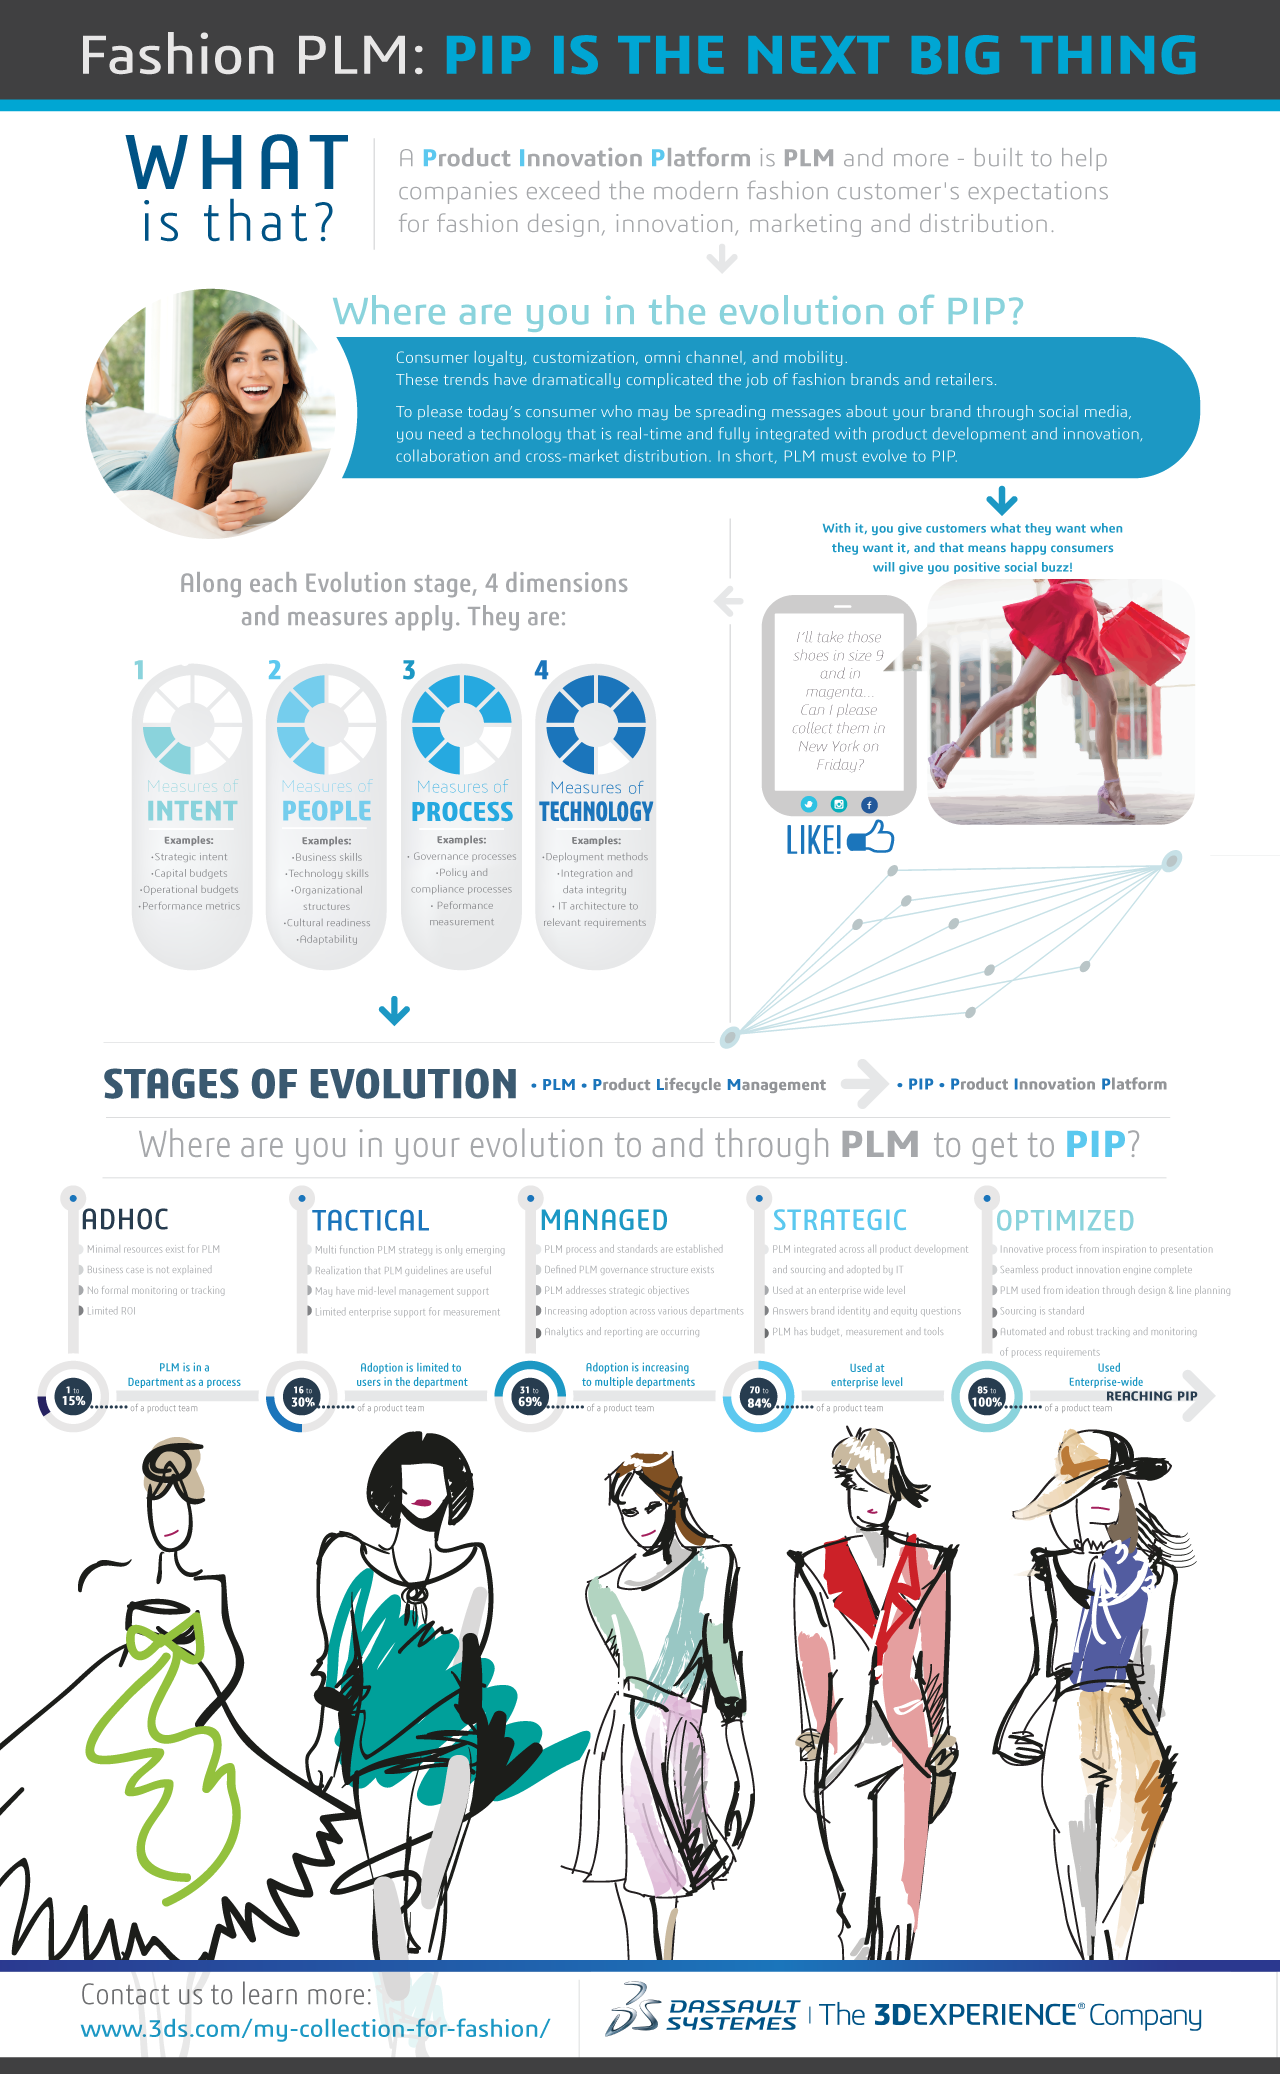 Fashion PLM, IDC Retail Insights